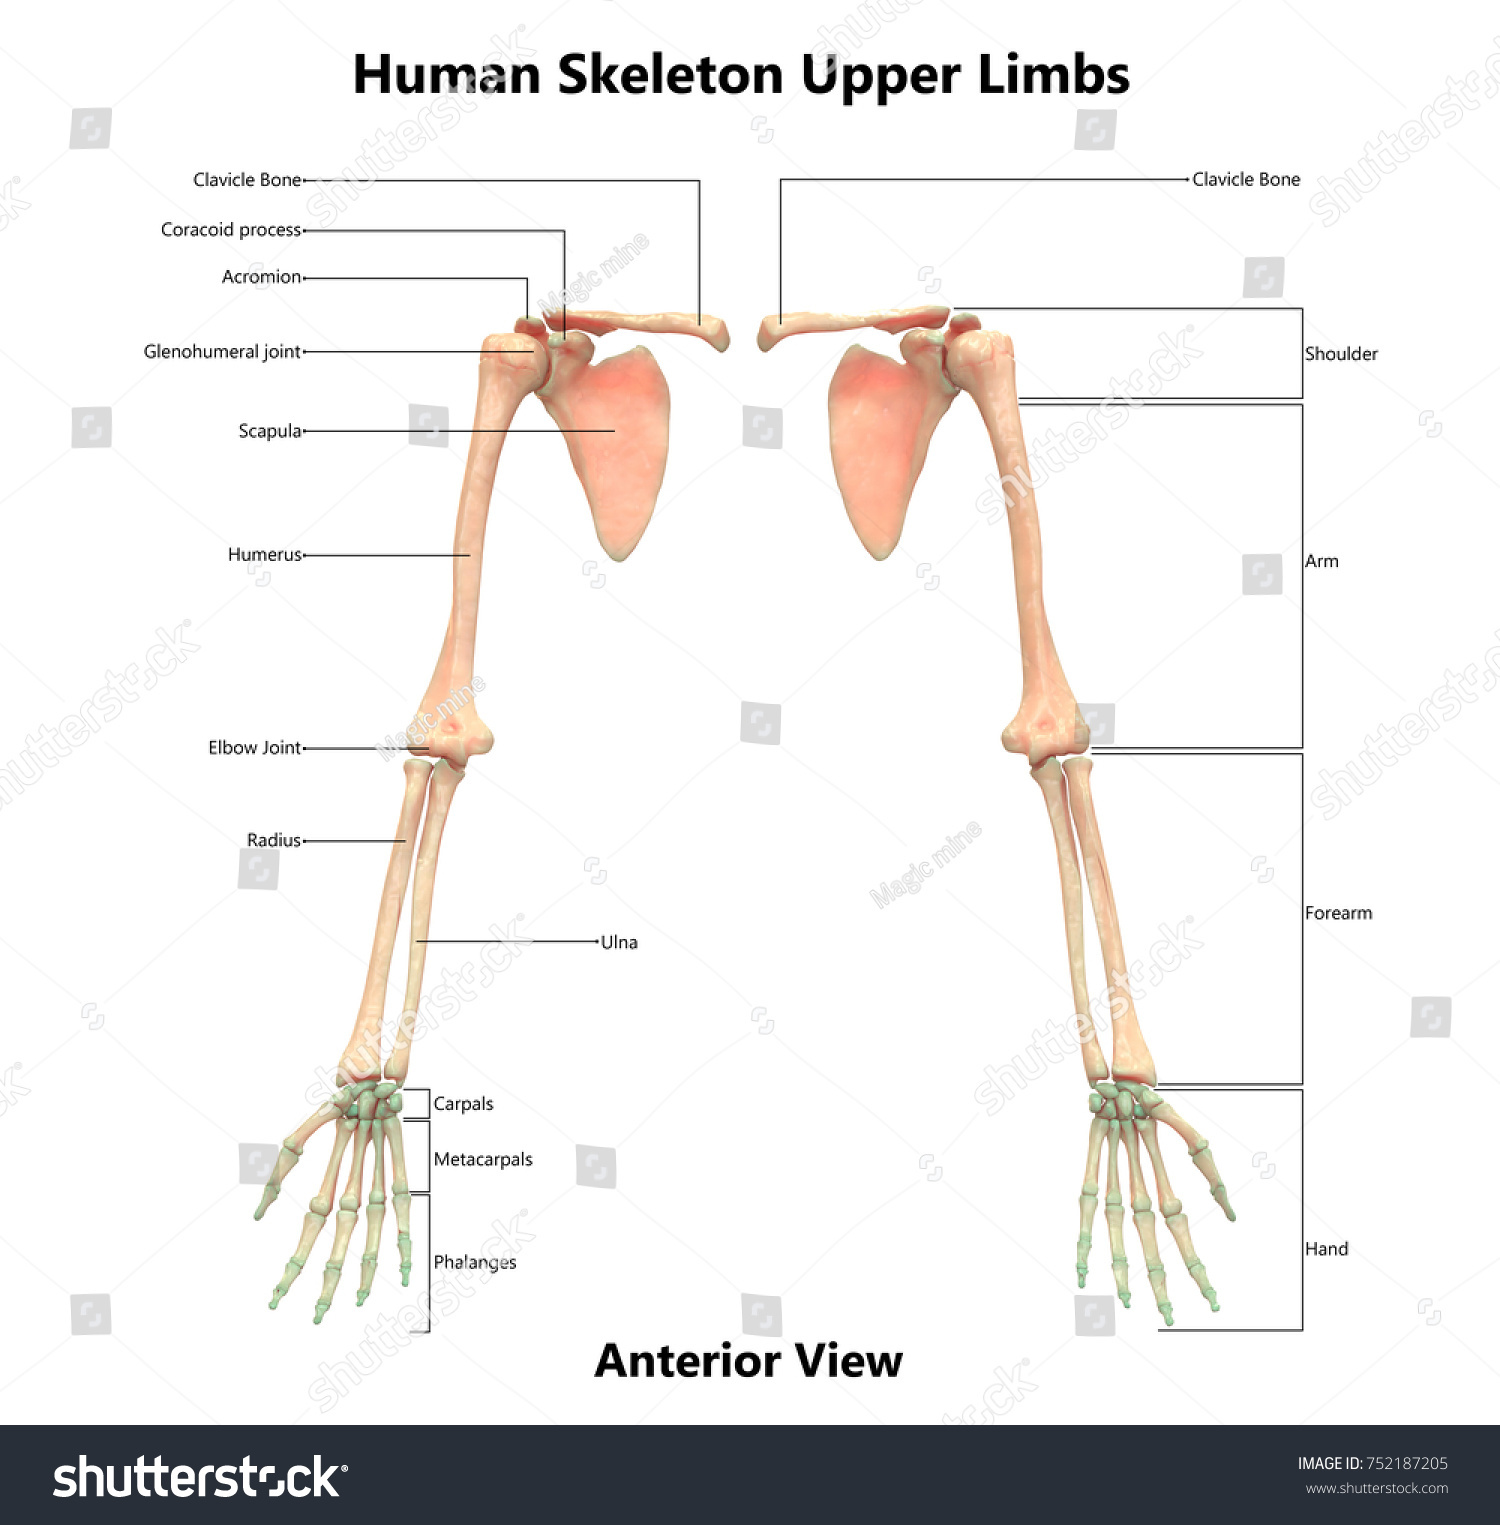 Human Skeleton System Upper Limbs Anatomy Stock Illustration ...